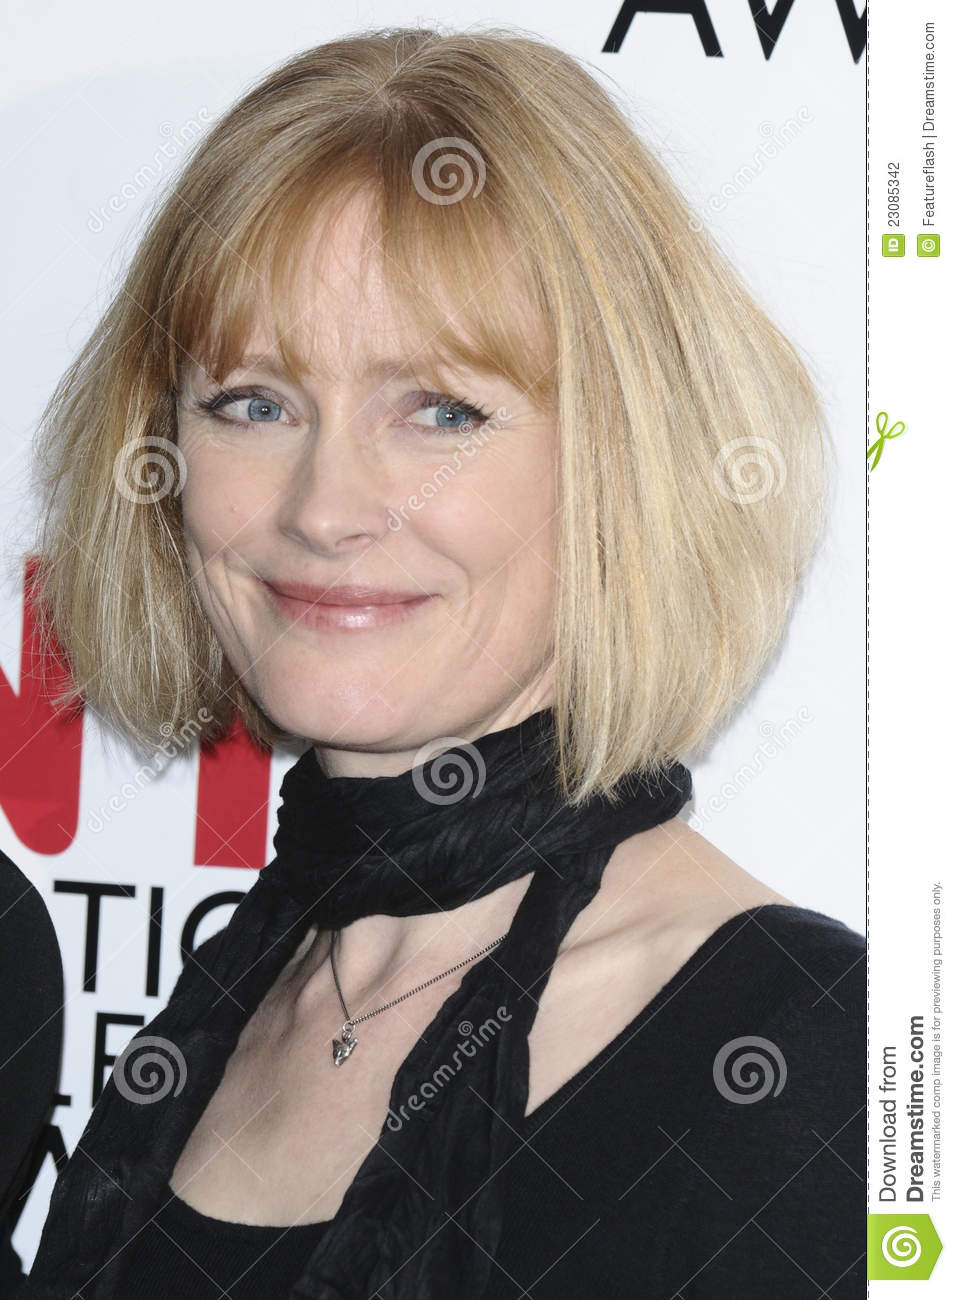 claire skinner height